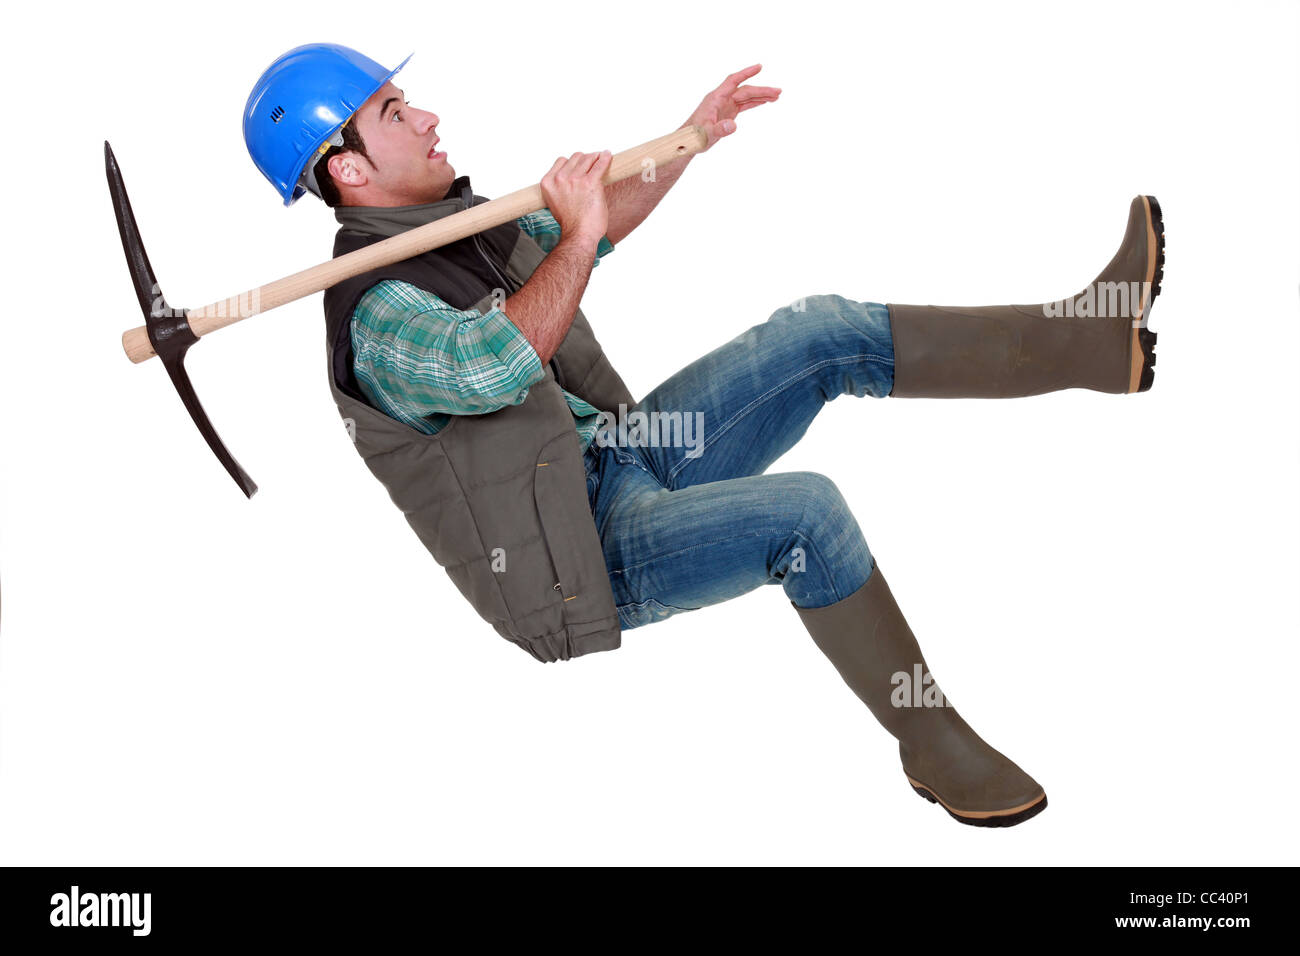 Falling Off Chair Stock Photos Amp Falling Off Chair Stock